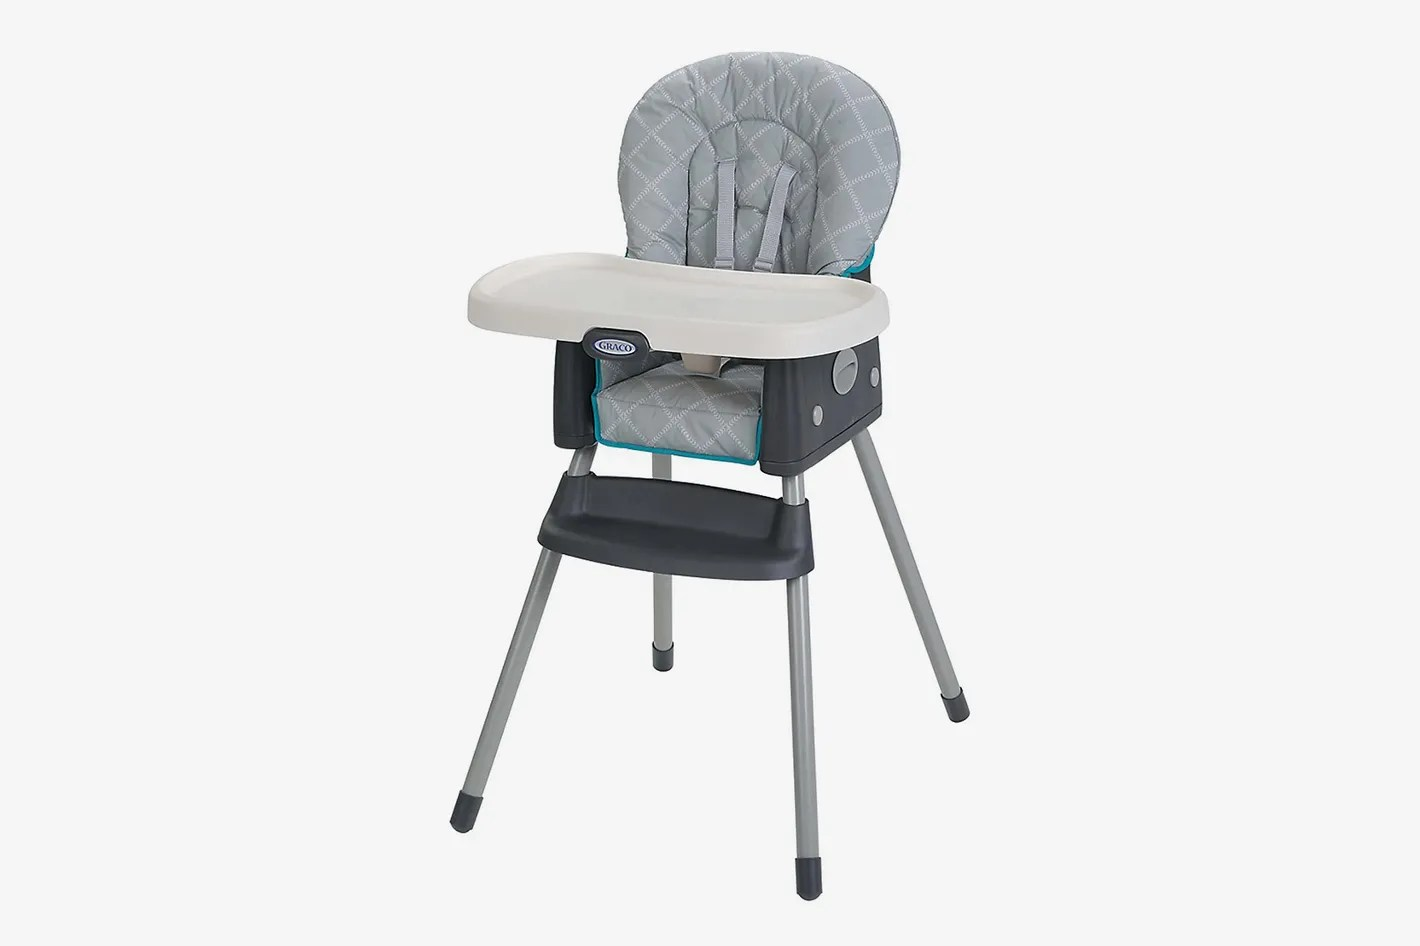 graco duodiner lx high chair egg accessories 3 in 1 vs 4 bruin blog